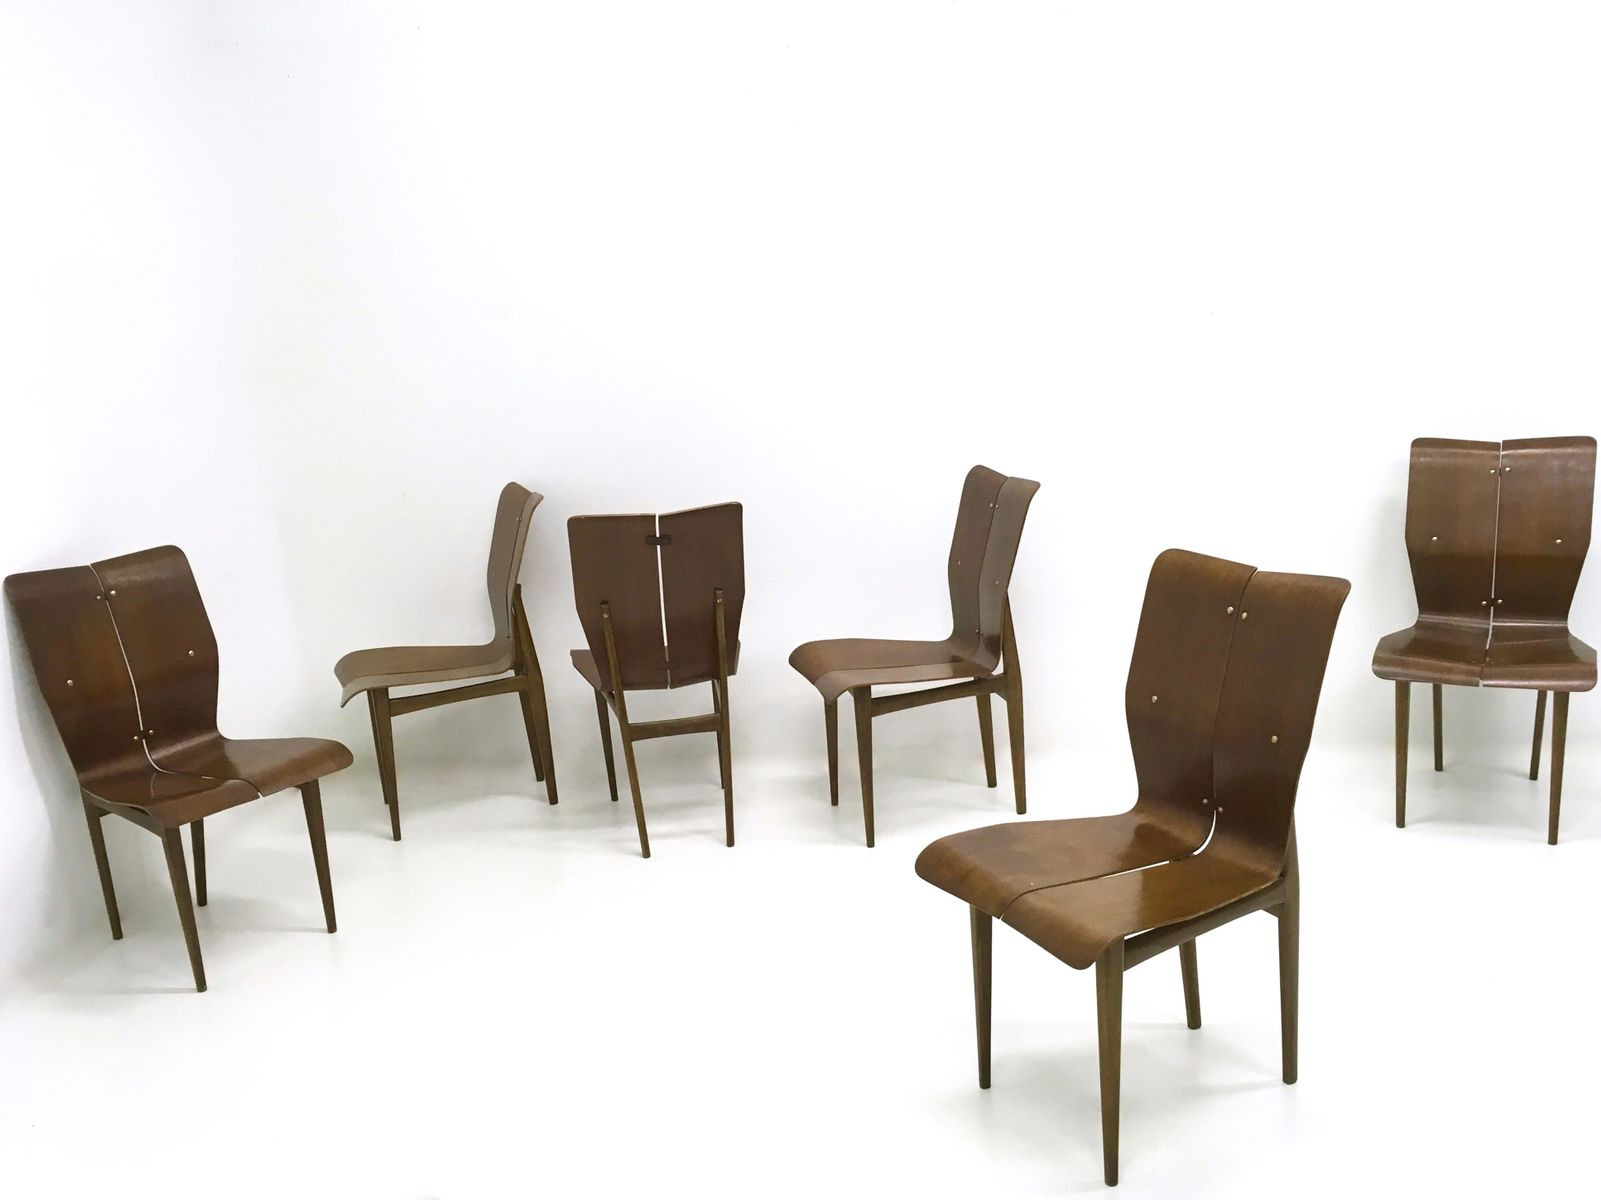 Vintage Curved Wood Dining Chairs, 1950s, Set Of 6 For Sale At Pamono